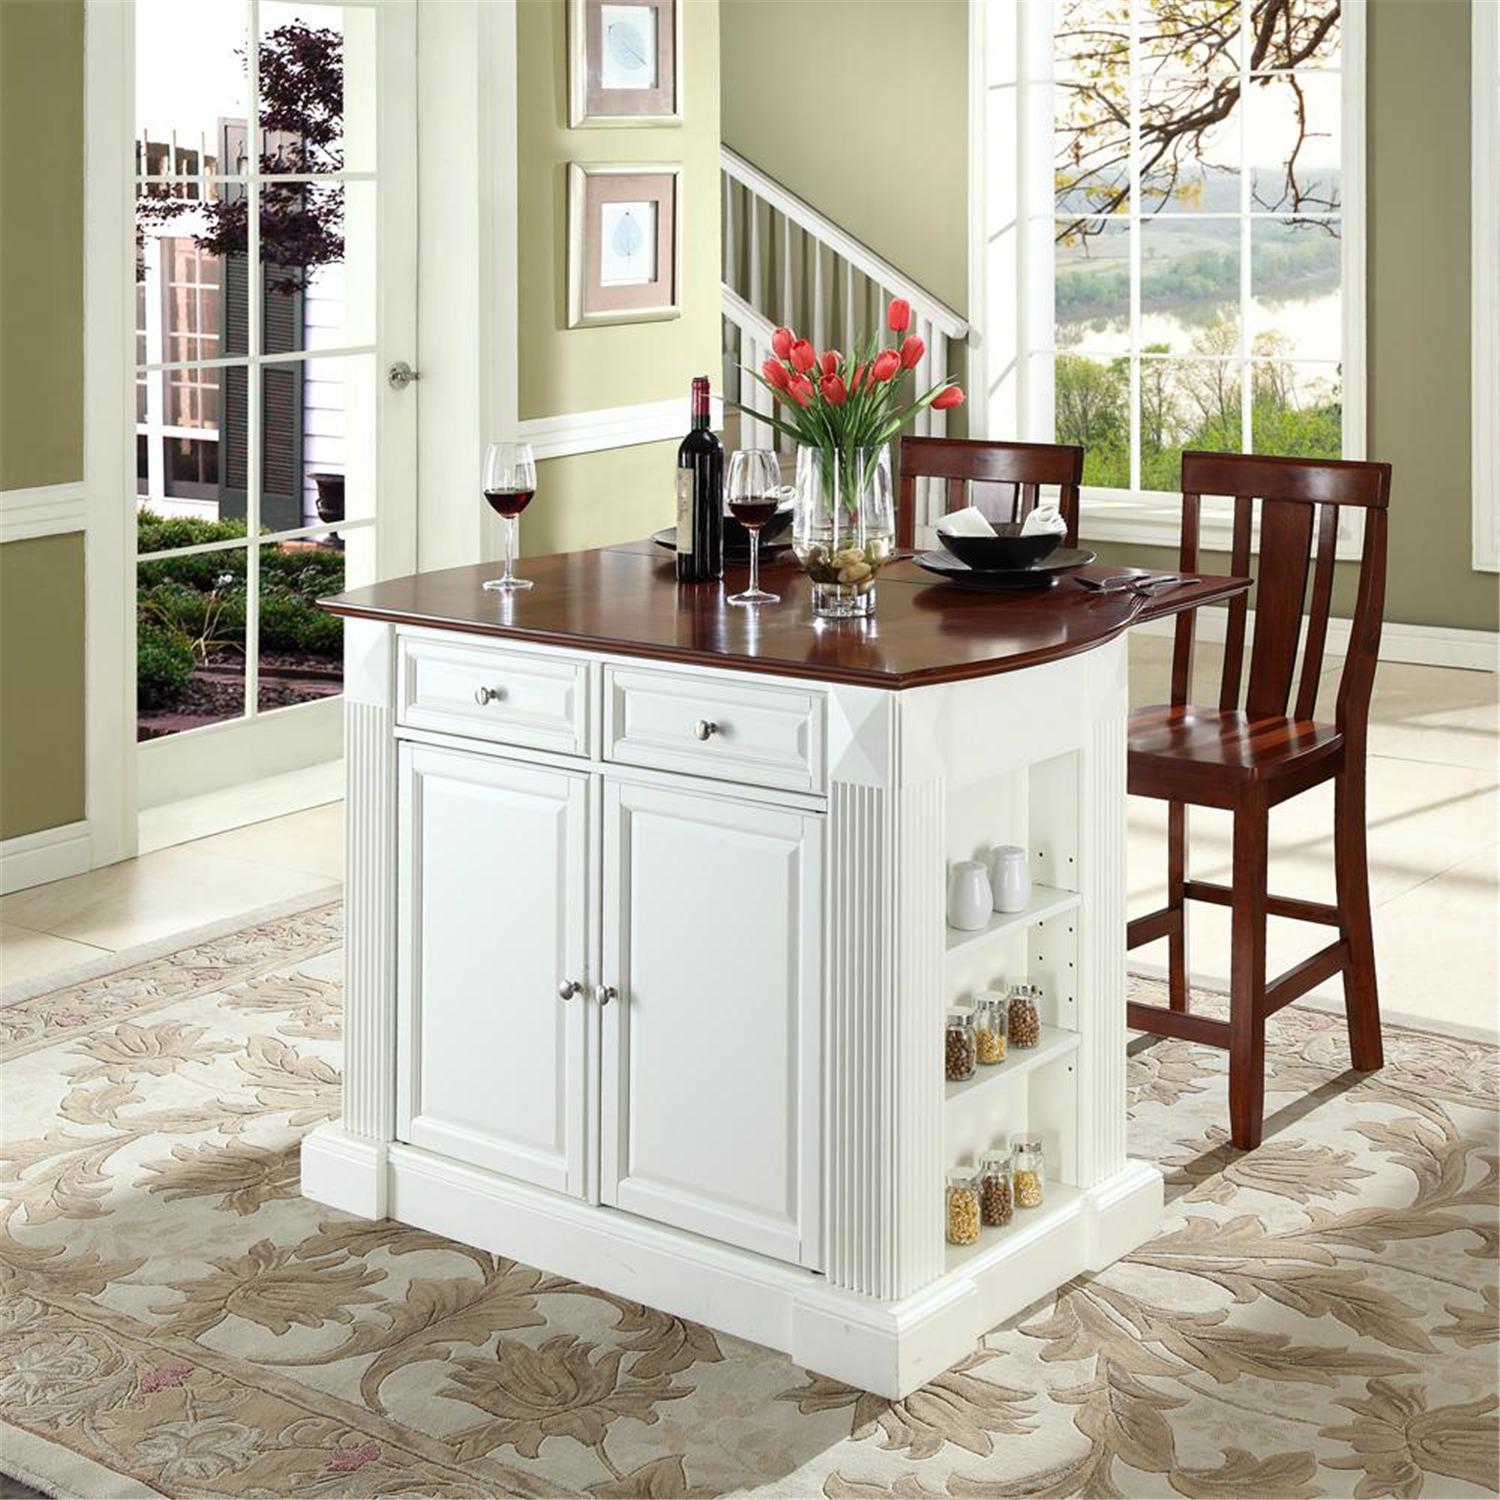 "Crosley Drop Leaf Breakfast Bar Top Kitchen Island with 24"" Shield Back Stools White at Sears.com"